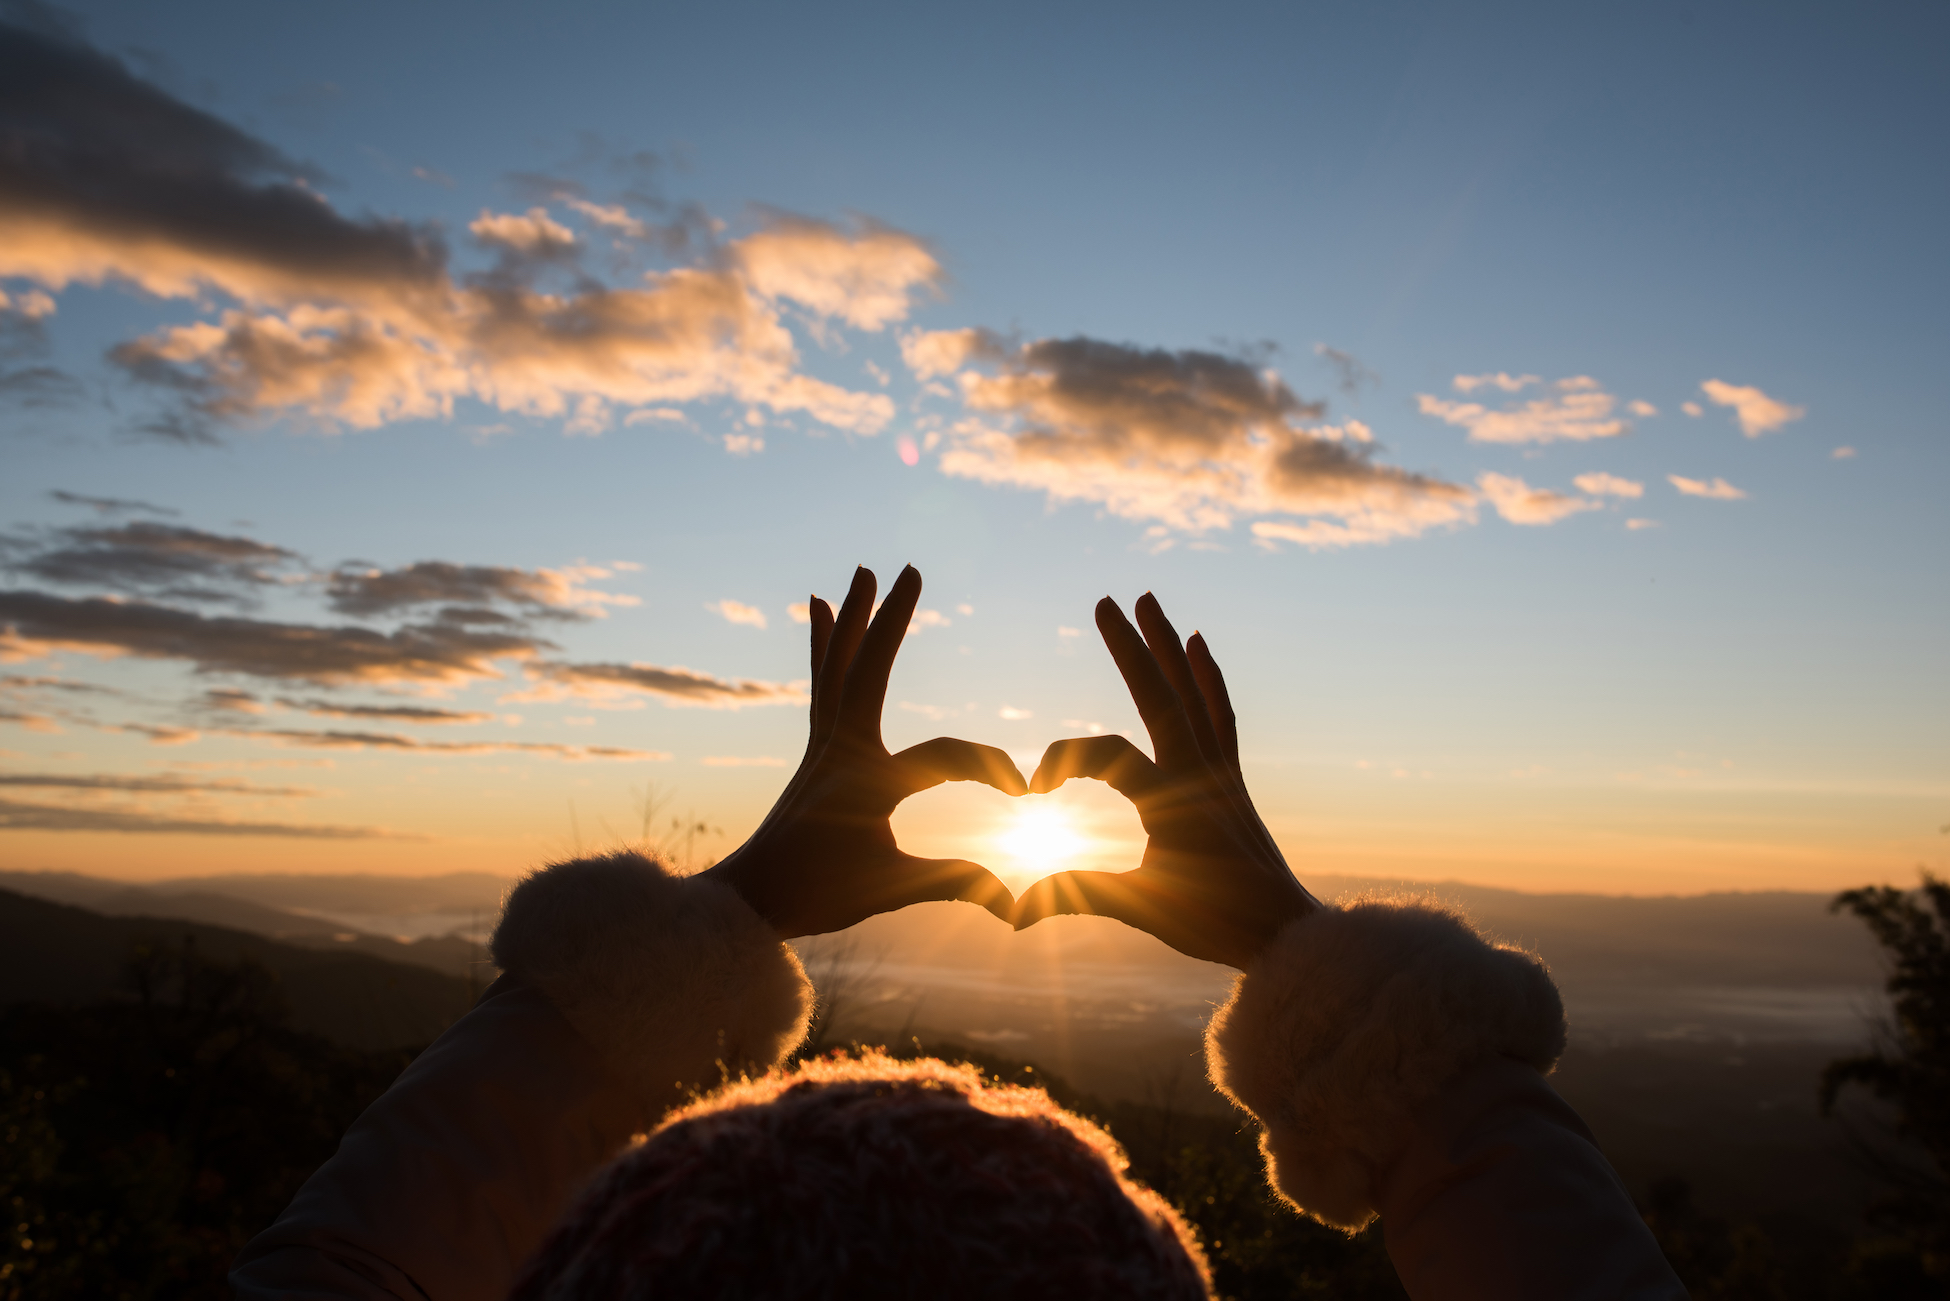 Silhouette hands forming a heart shape with sunrise